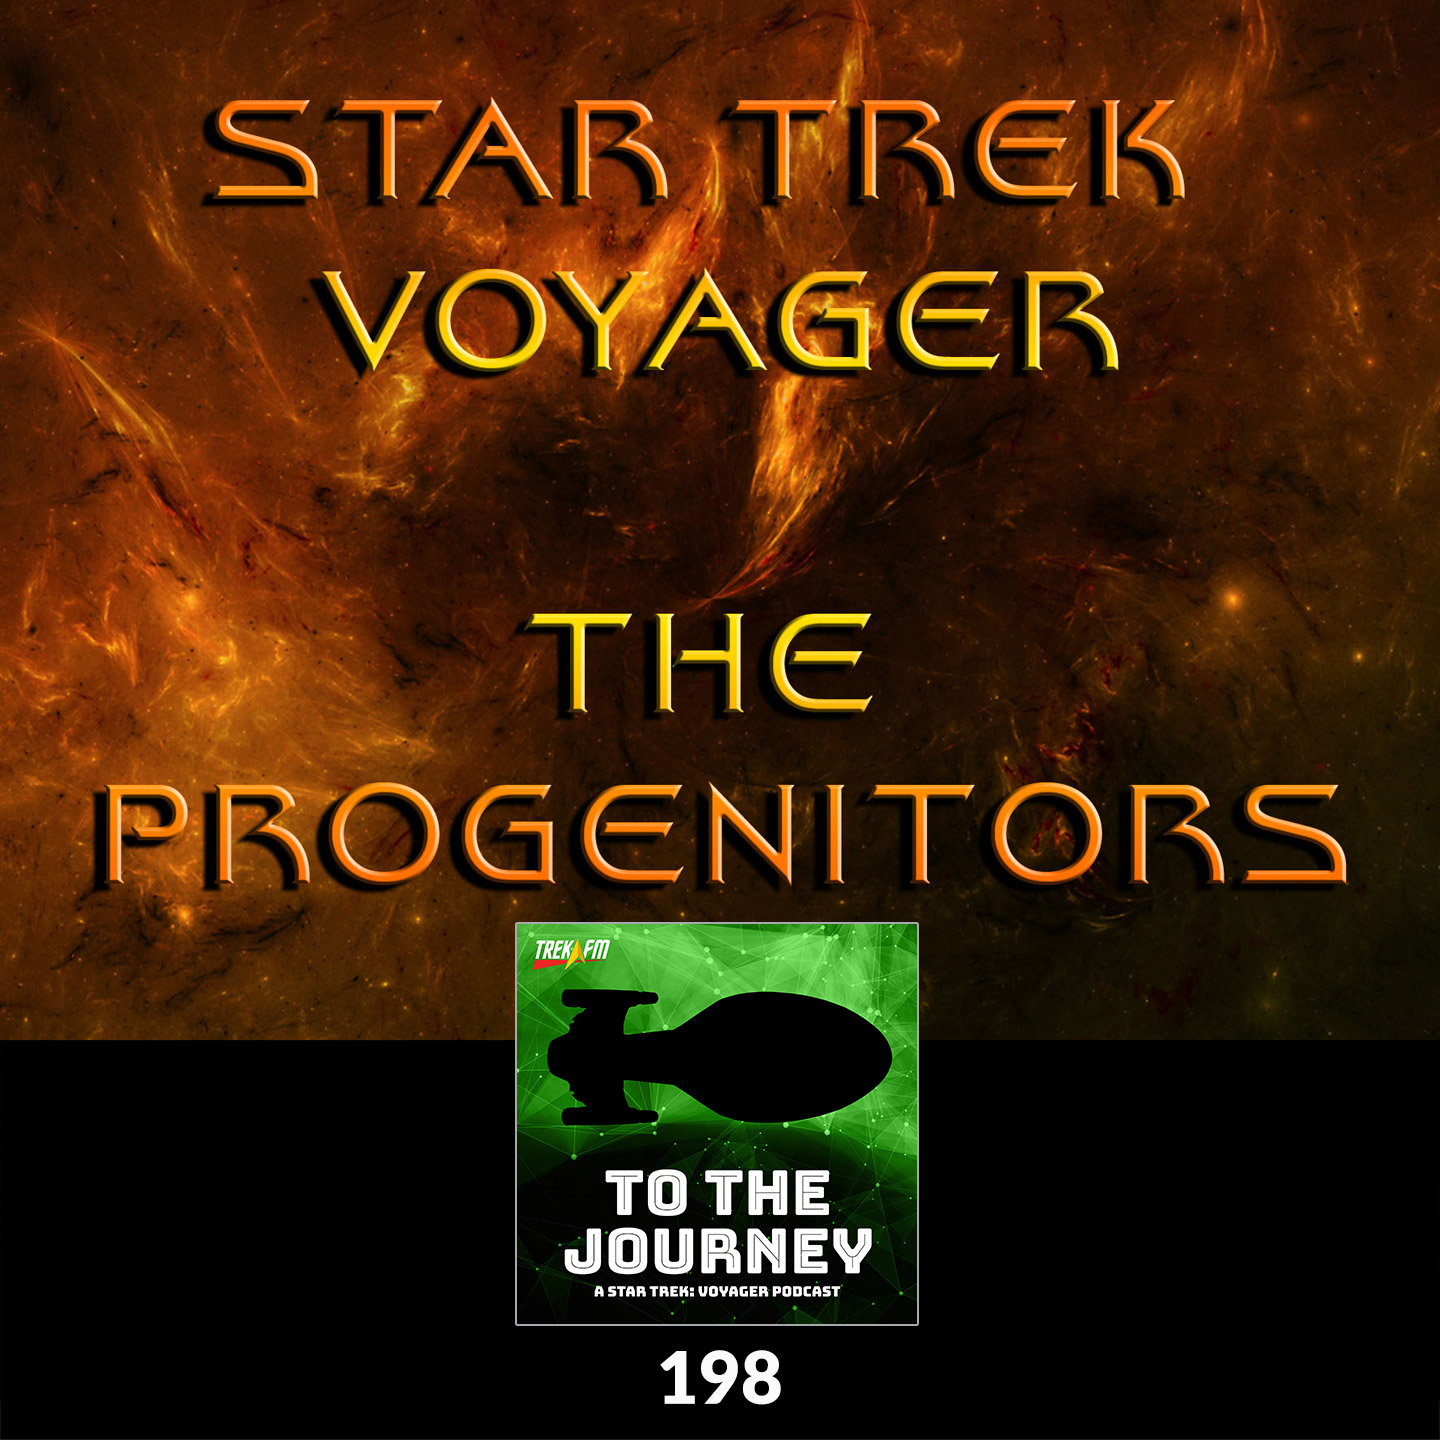 To The Journey 198: The Progenitors - The Voyager Movie